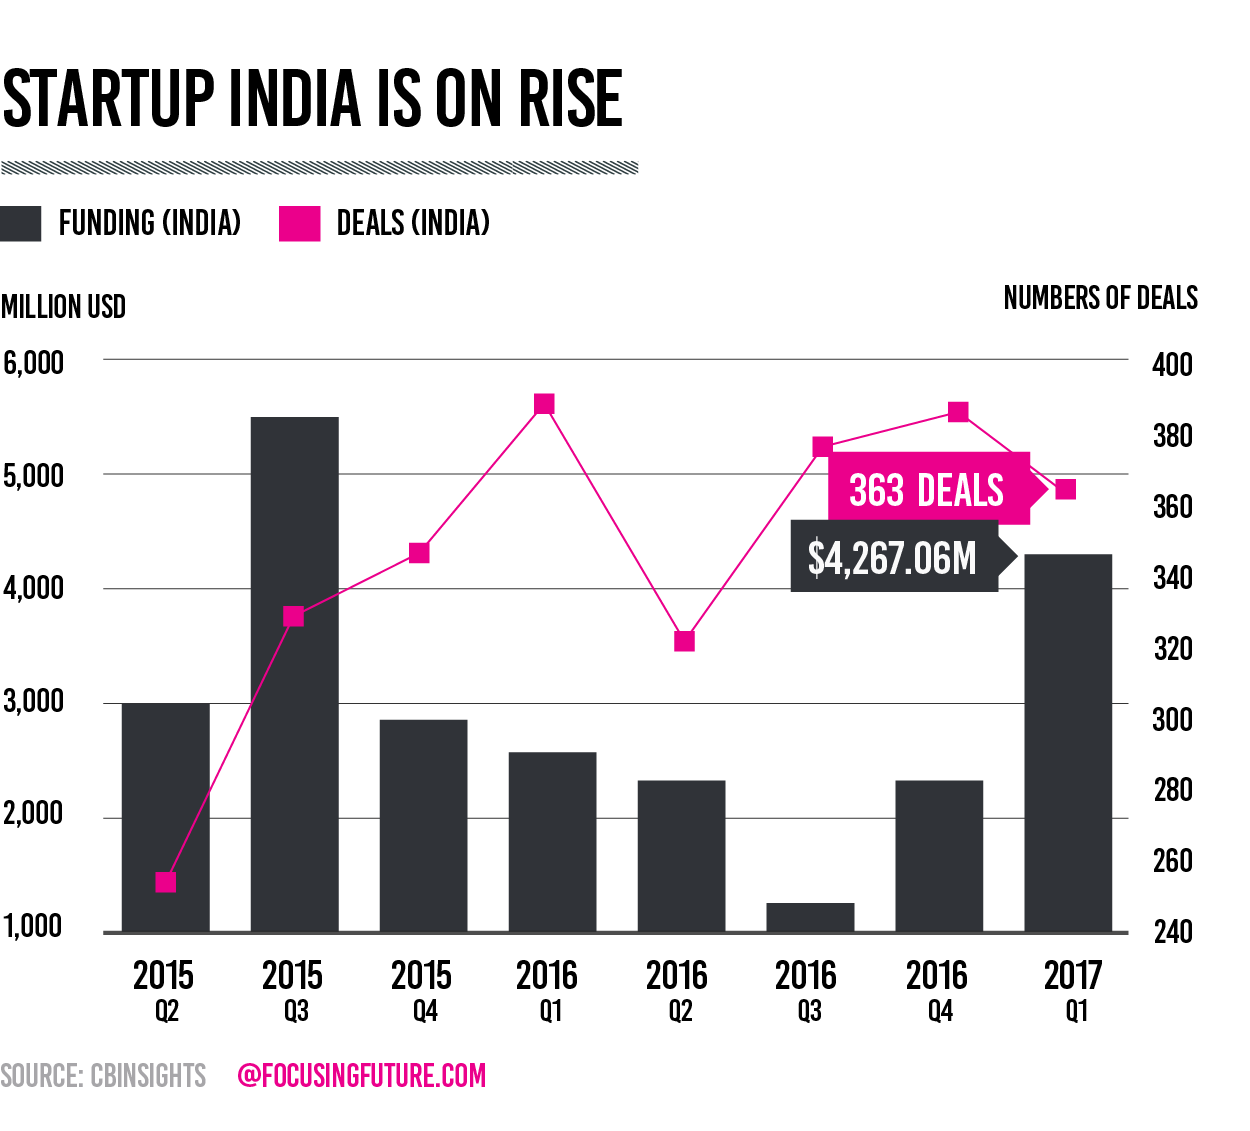 Startup India is on rise